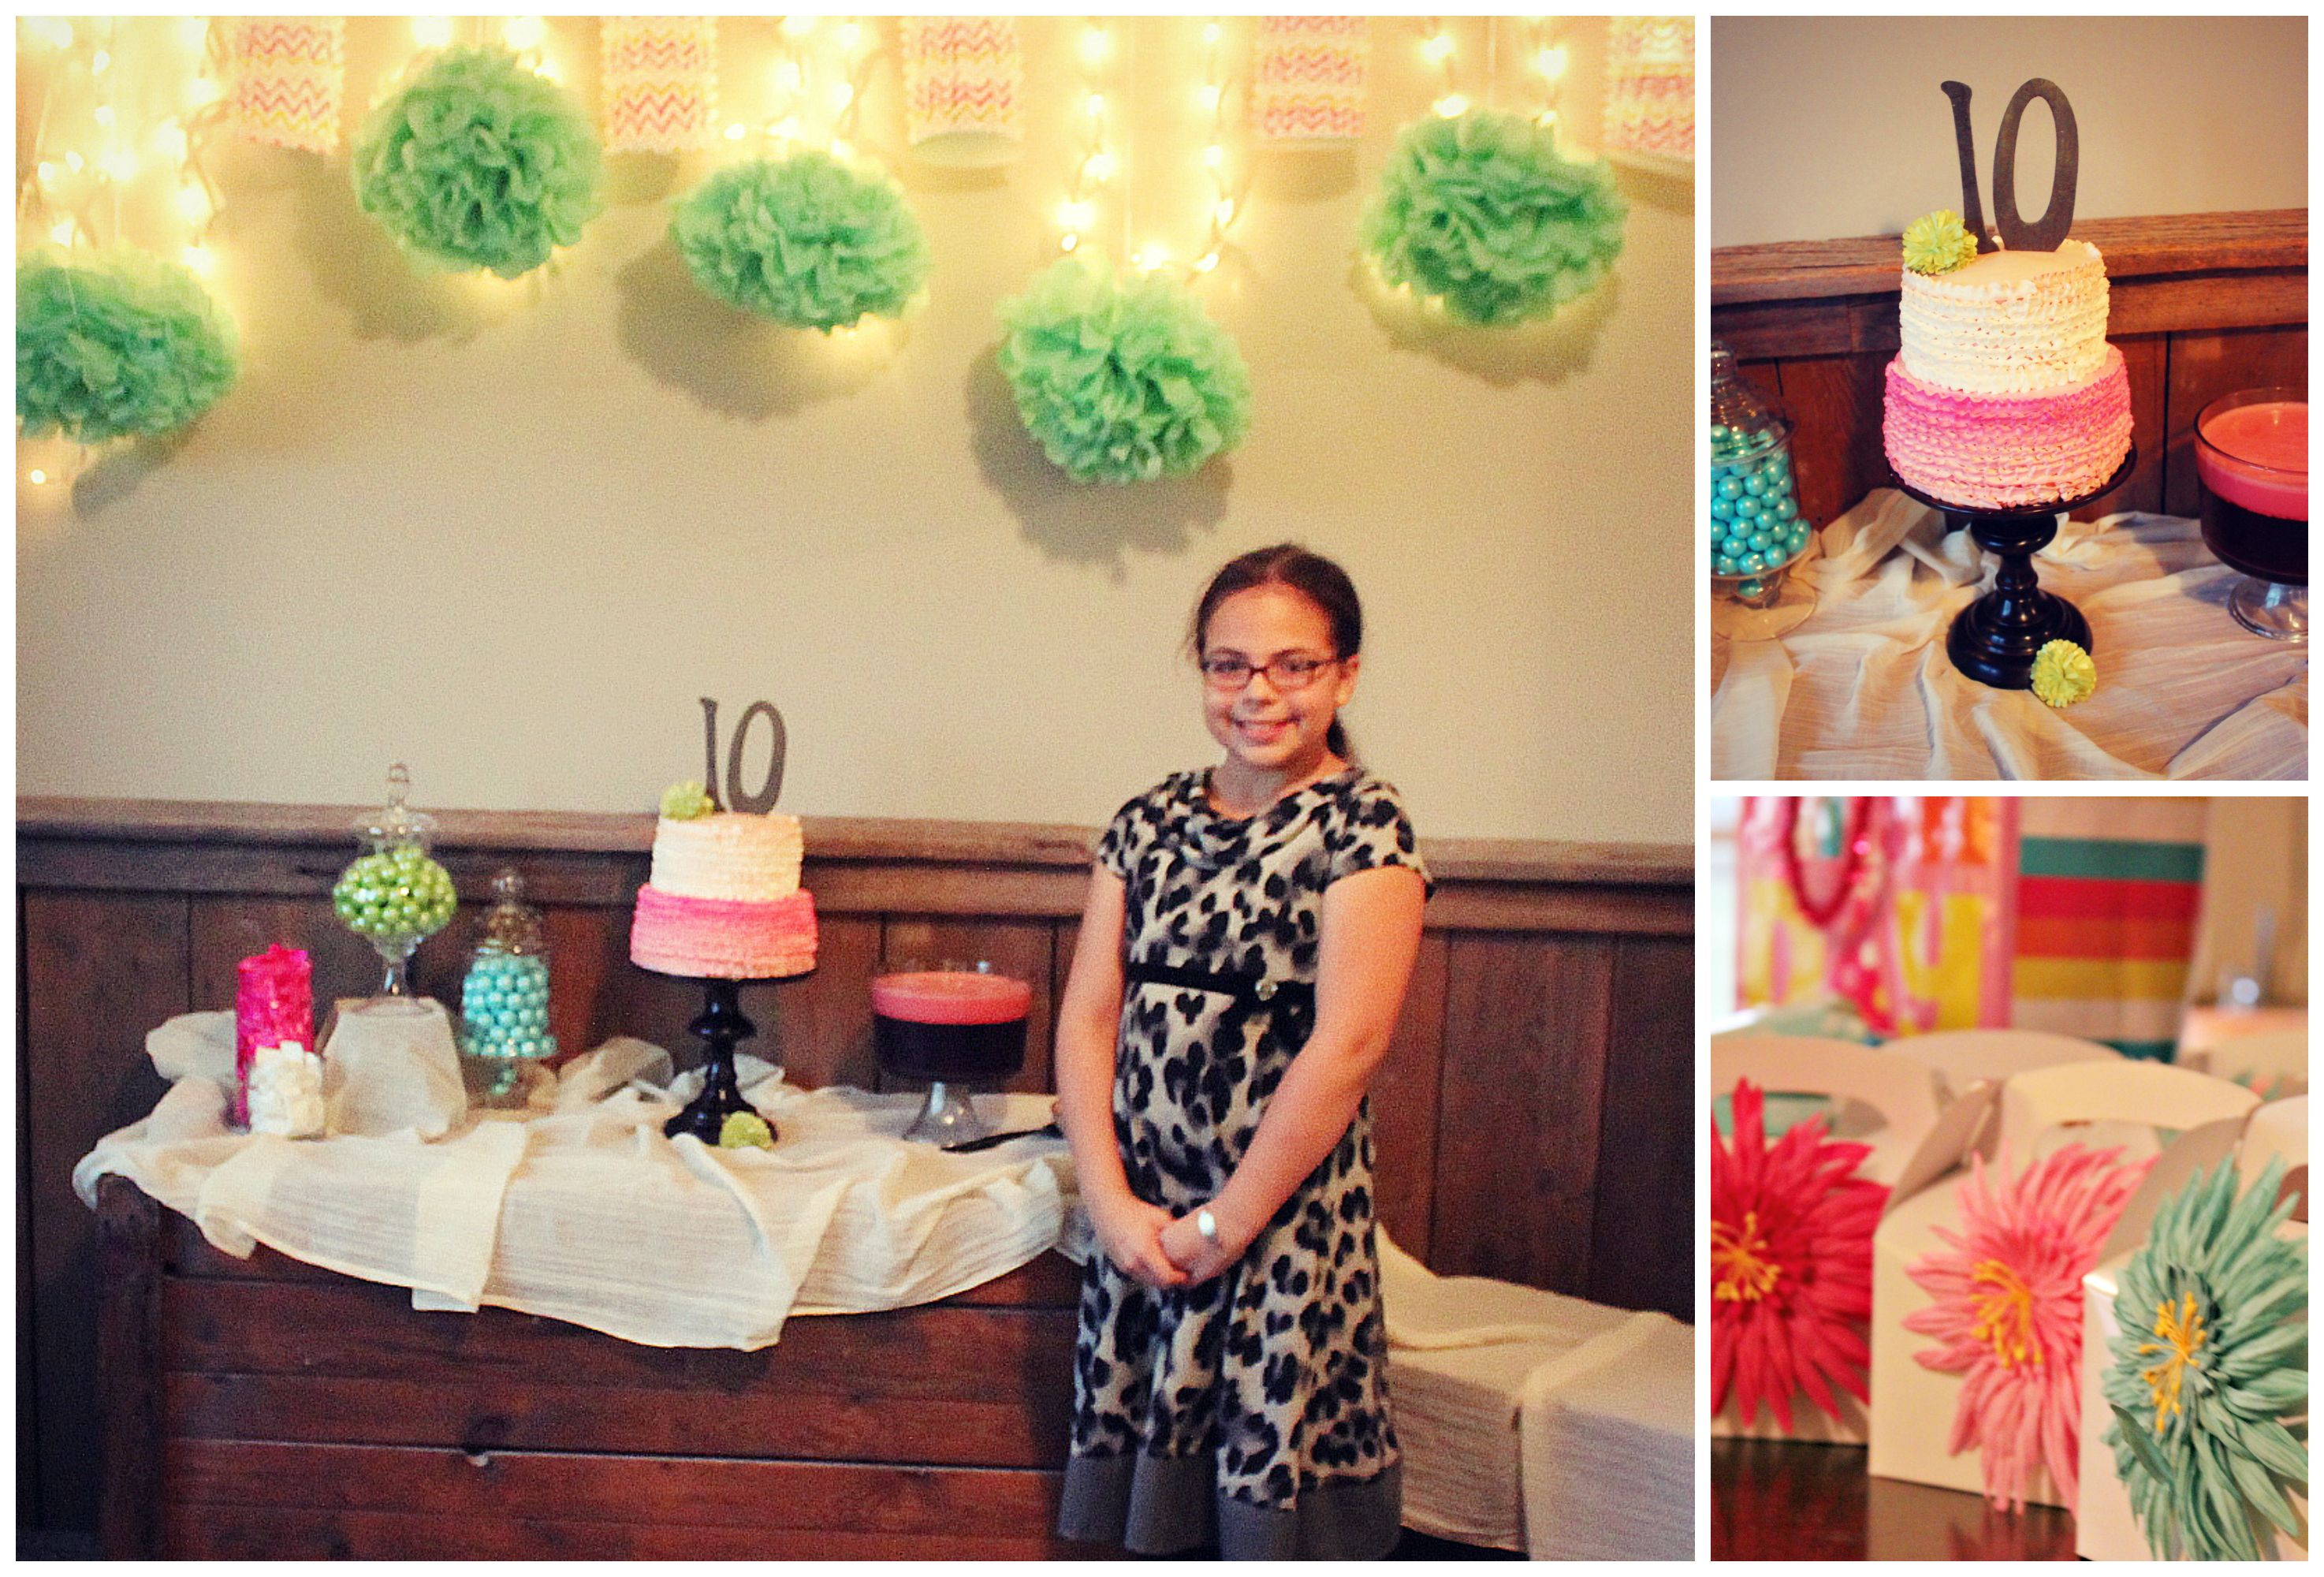 10 years old birthday party  Birthday Party Ideas!!  Pinterest